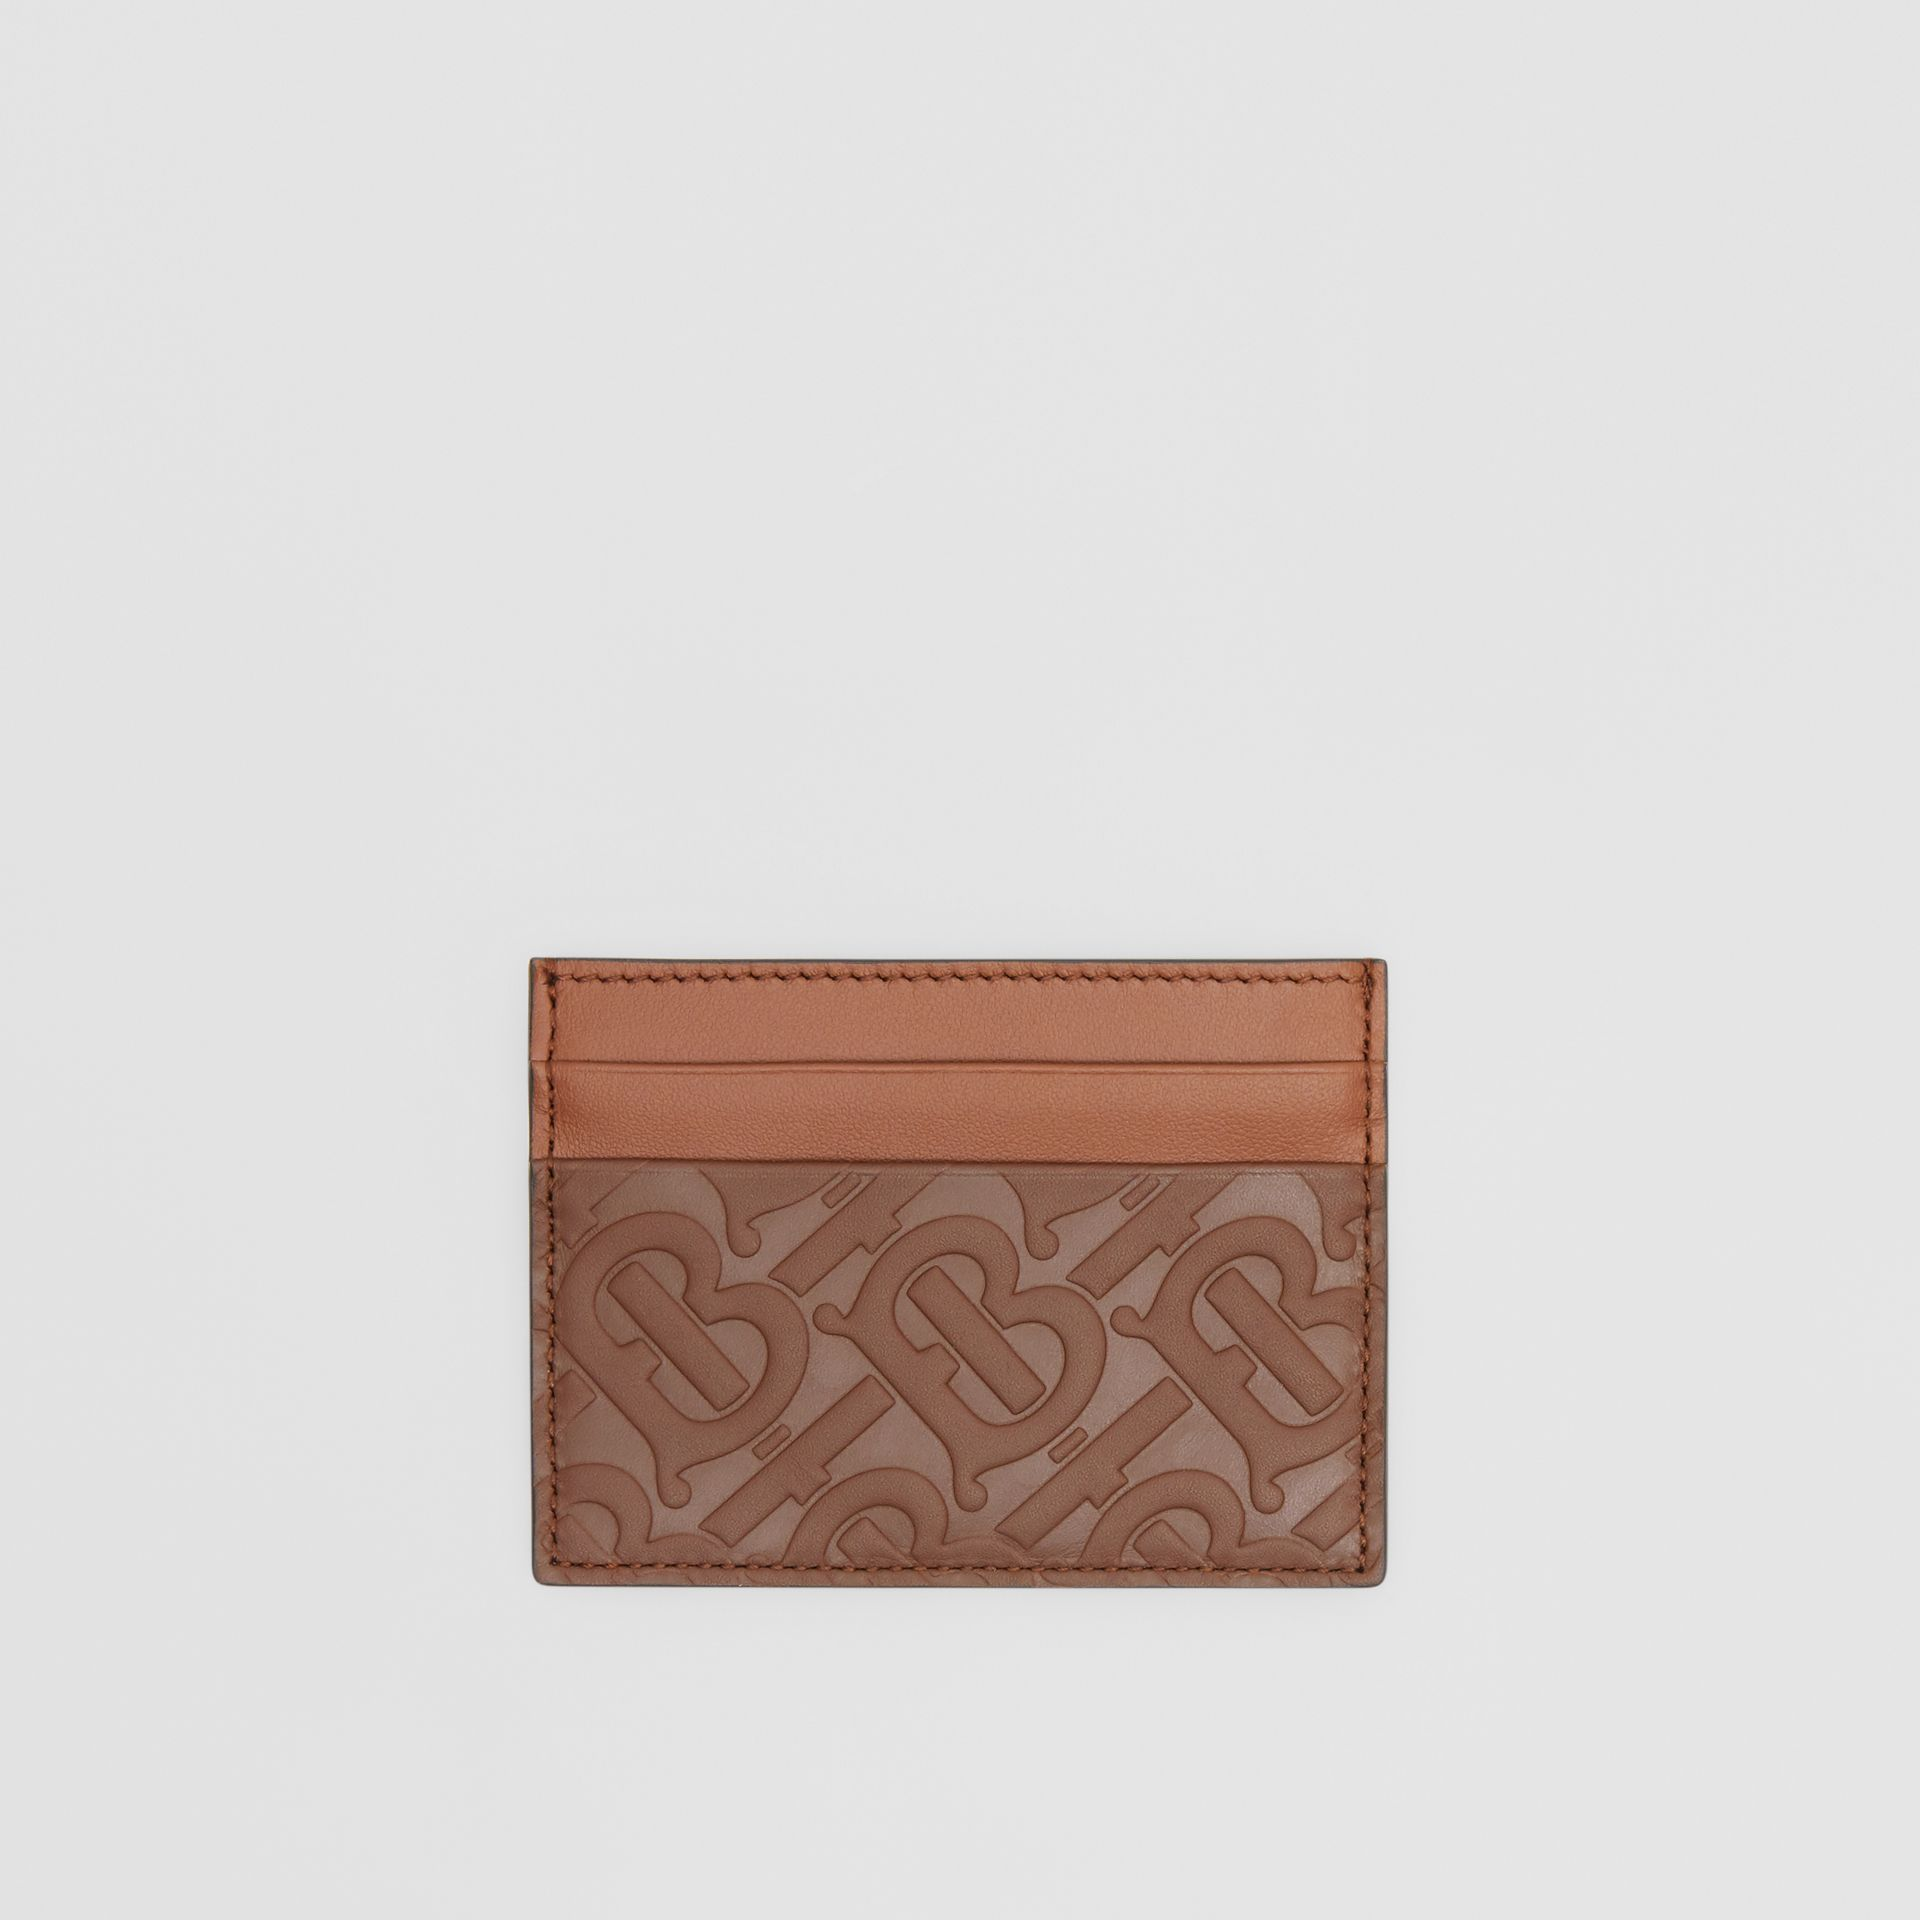 Monogram Leather Card Case in Dark Tan - Men | Burberry Canada - gallery image 0